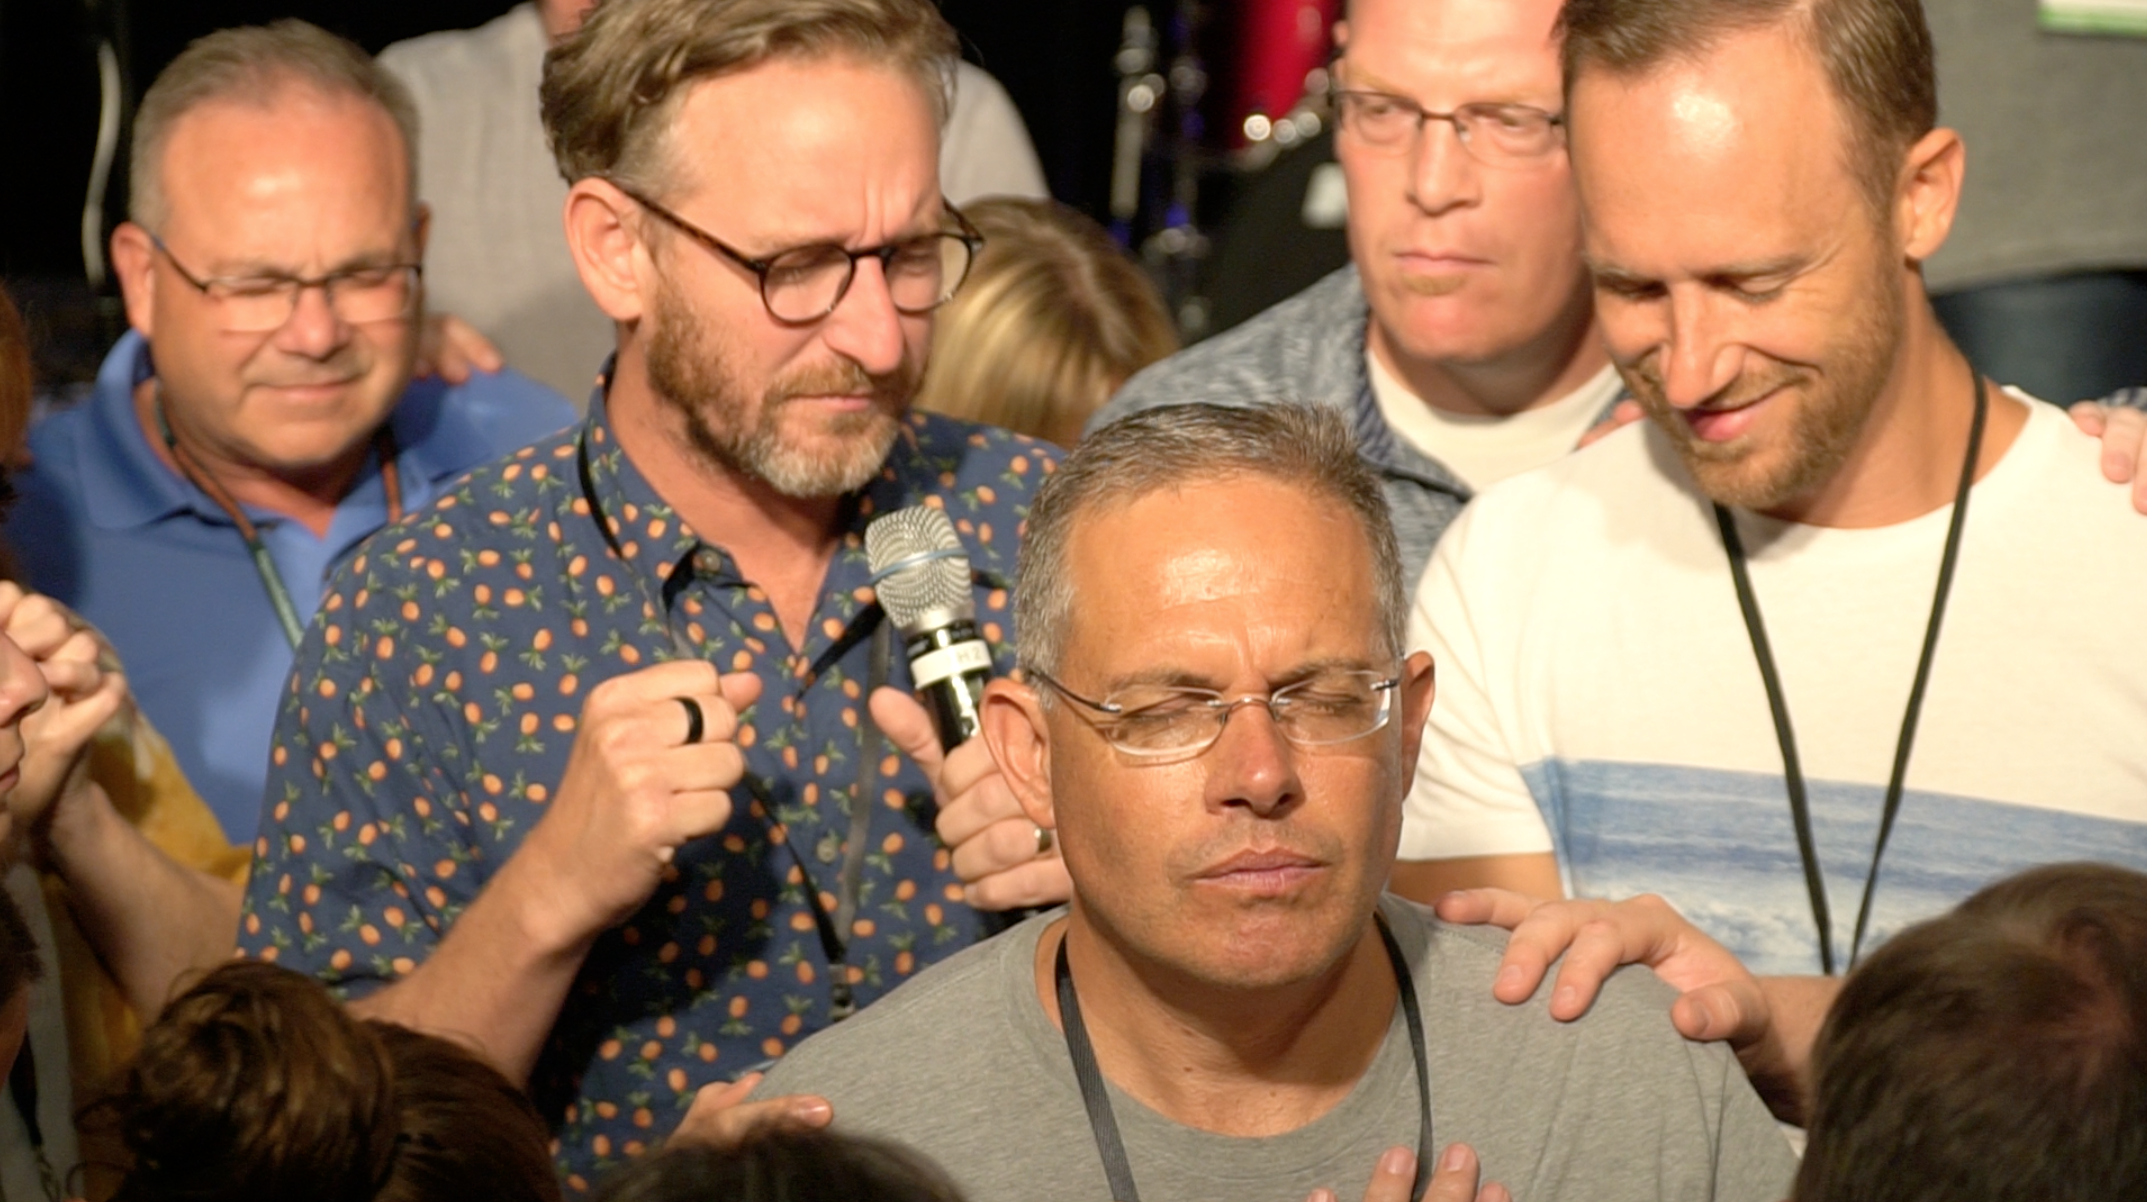 Tom Shaw, Brice Fogle, and several others gather around Scott Marques during the night of prayer at Celebration Southeast.